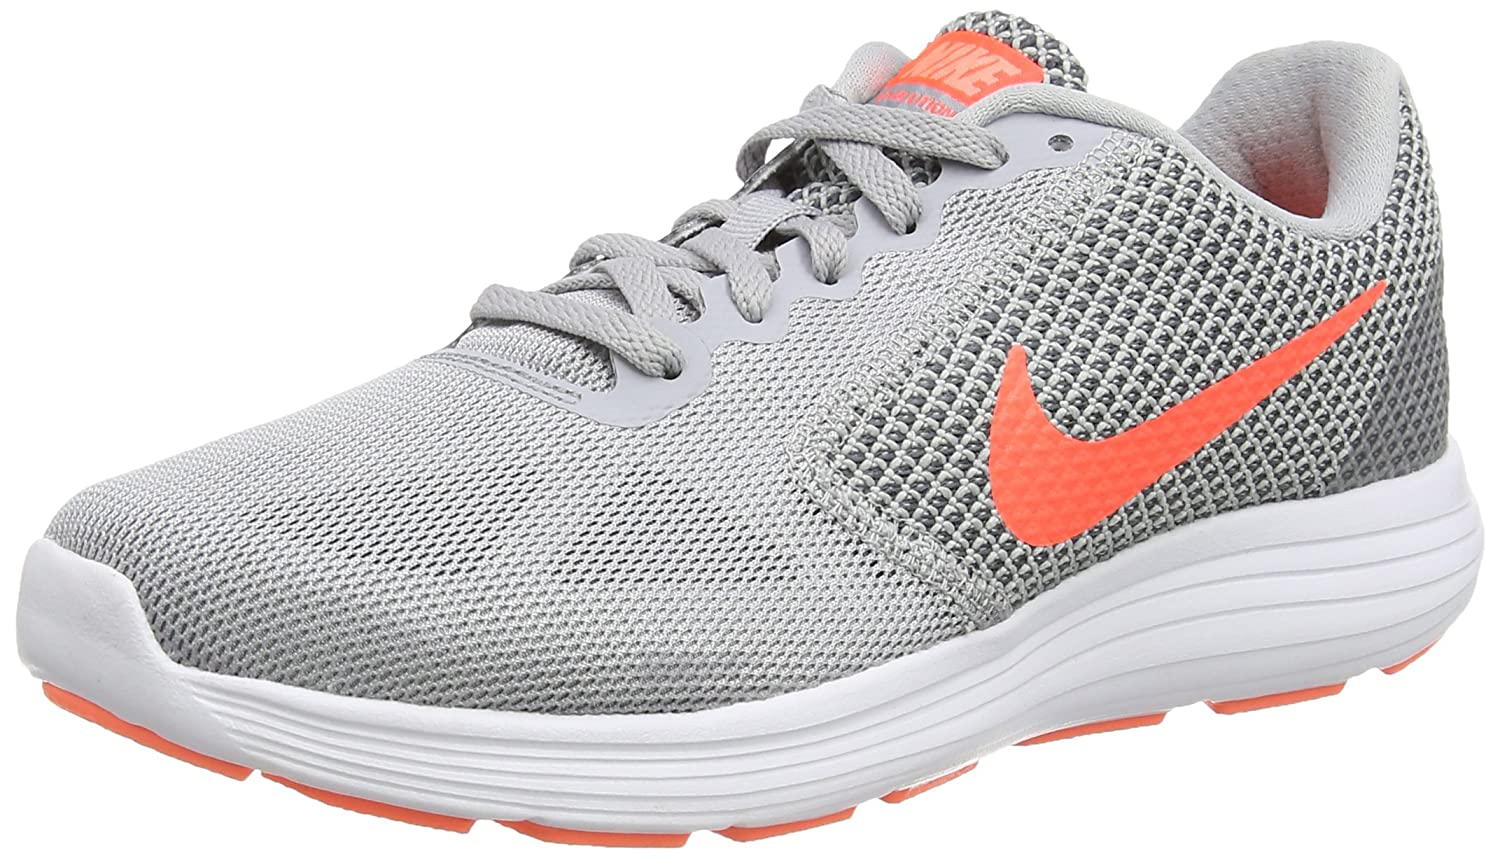 Nike Women s Revolution 3 Running Shoe Wlf Gry/Hypr Orng/Cl Gry/Atmc 6 B(M)  US: Amazon.in: Shoes & Handbags